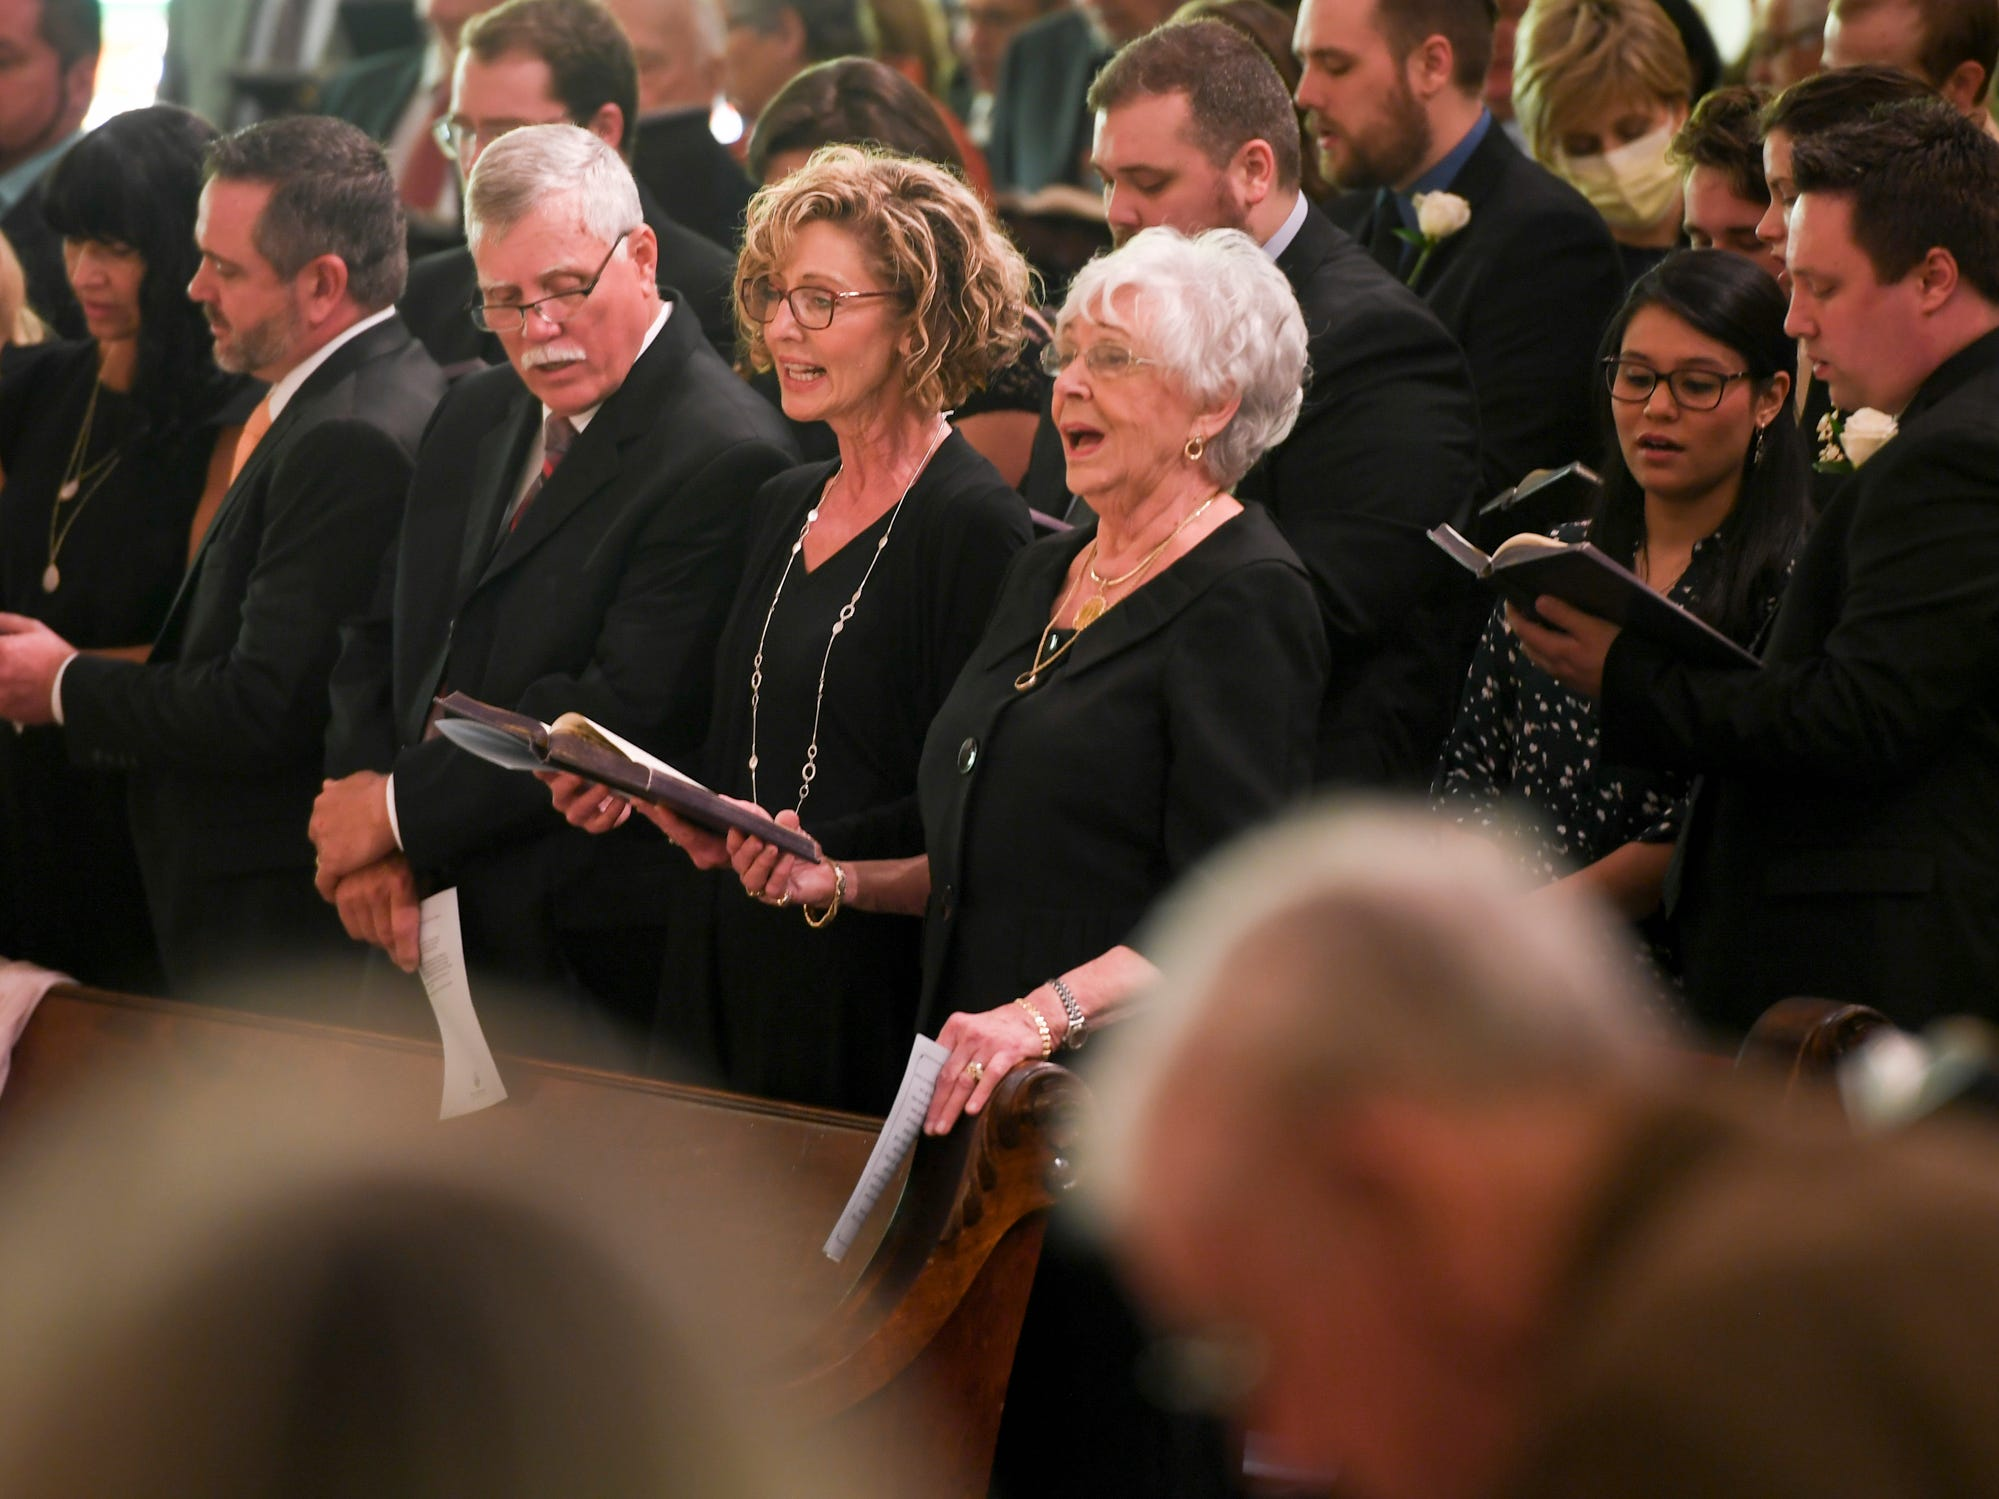 The celebration of life of Henry Harrison was held Friday, April 26, 2019, at First United Methodist Church.